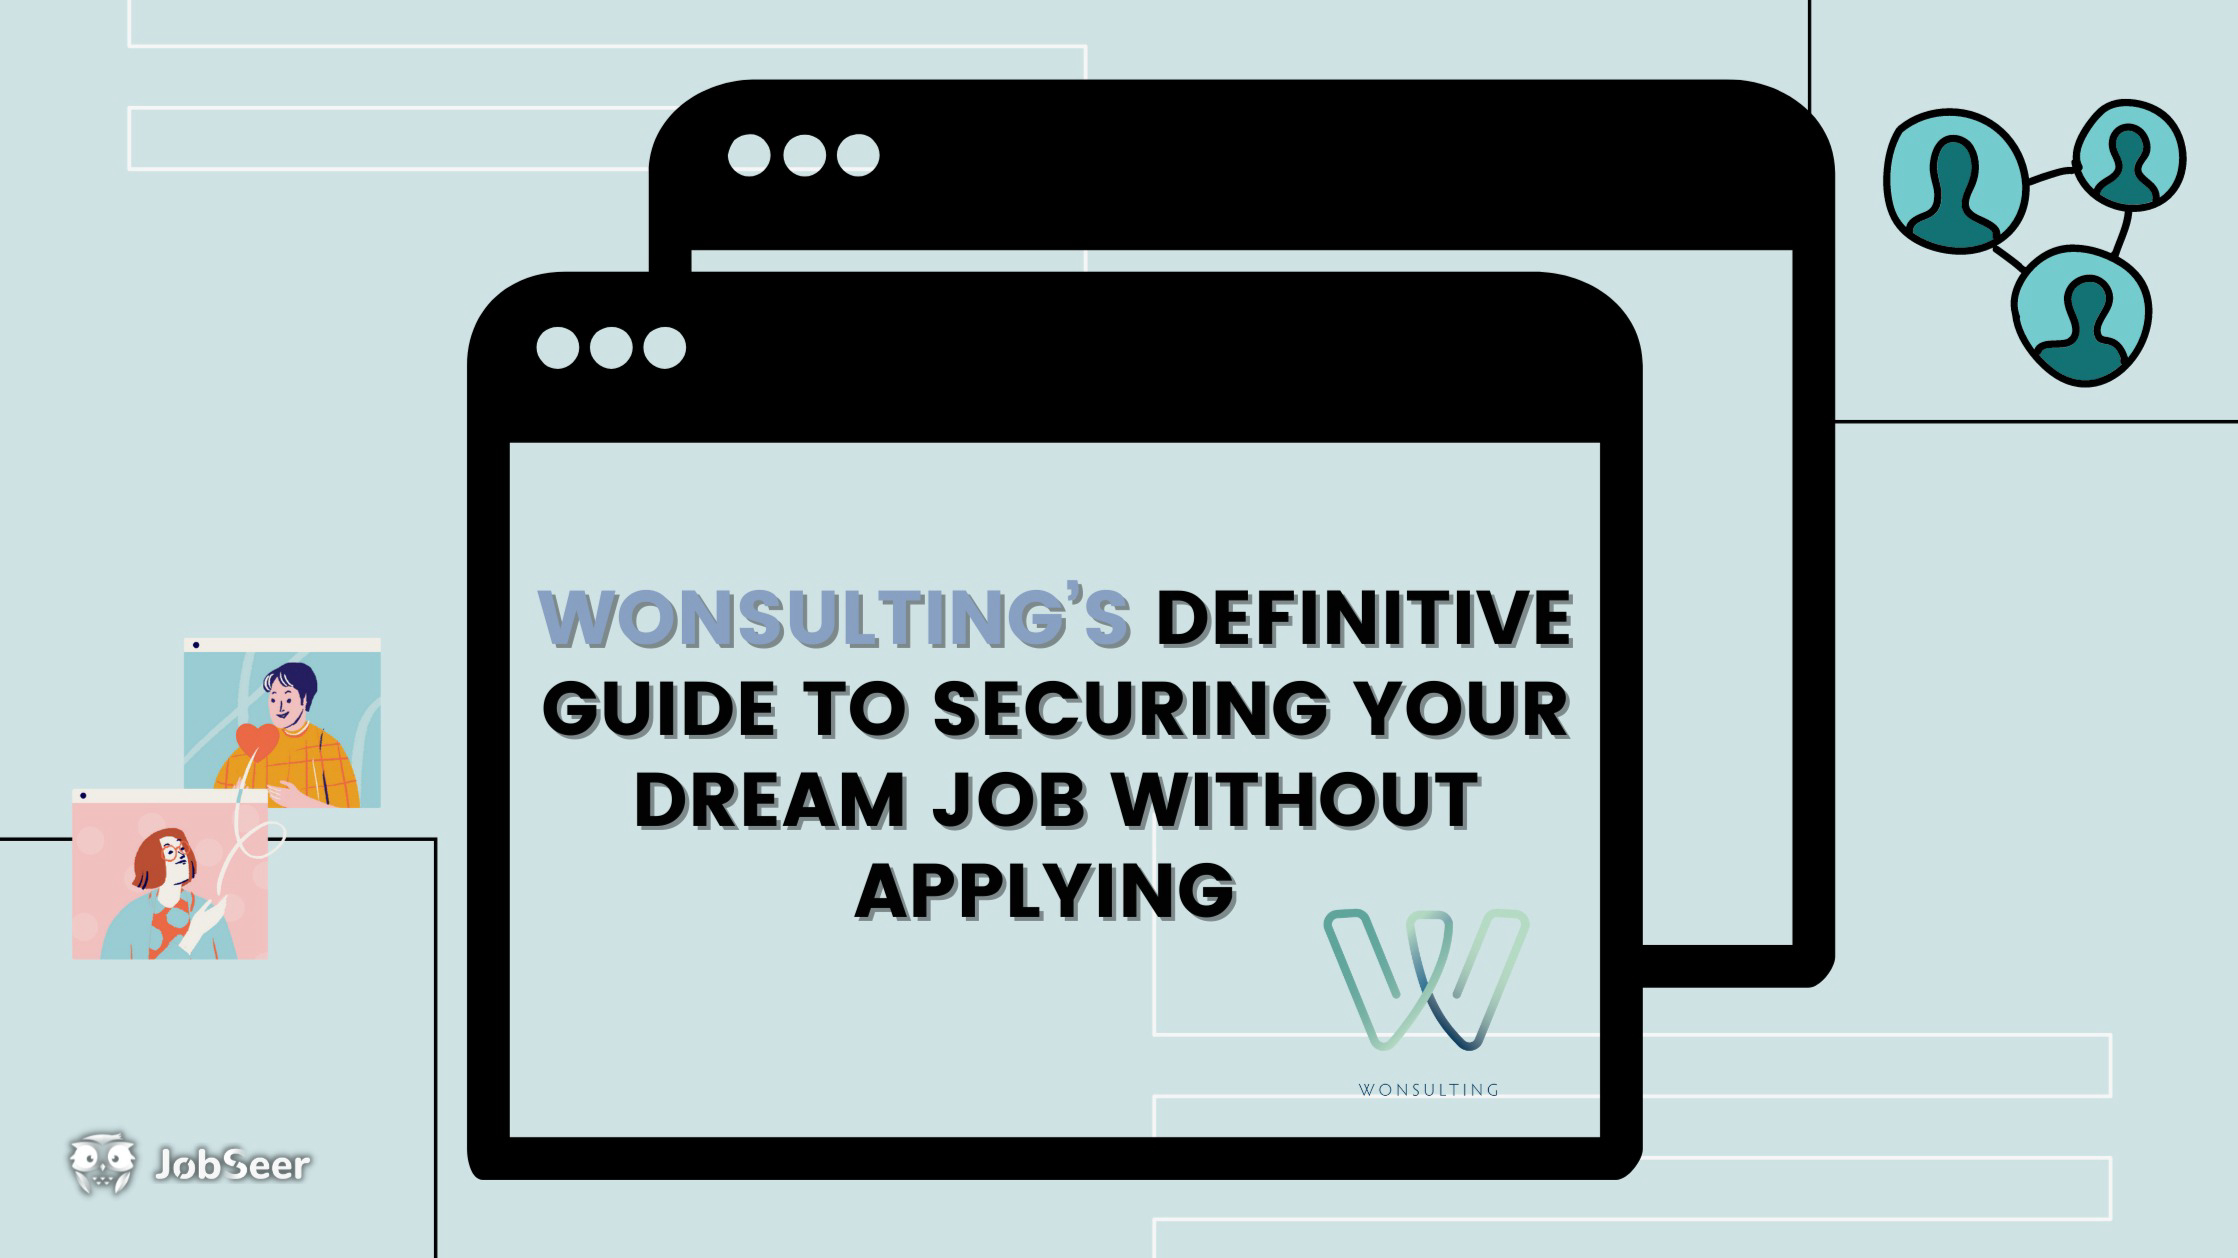 Wonsultings-Definitive-Guide-to-Securing-Your-Dream-Job-Without-Applying